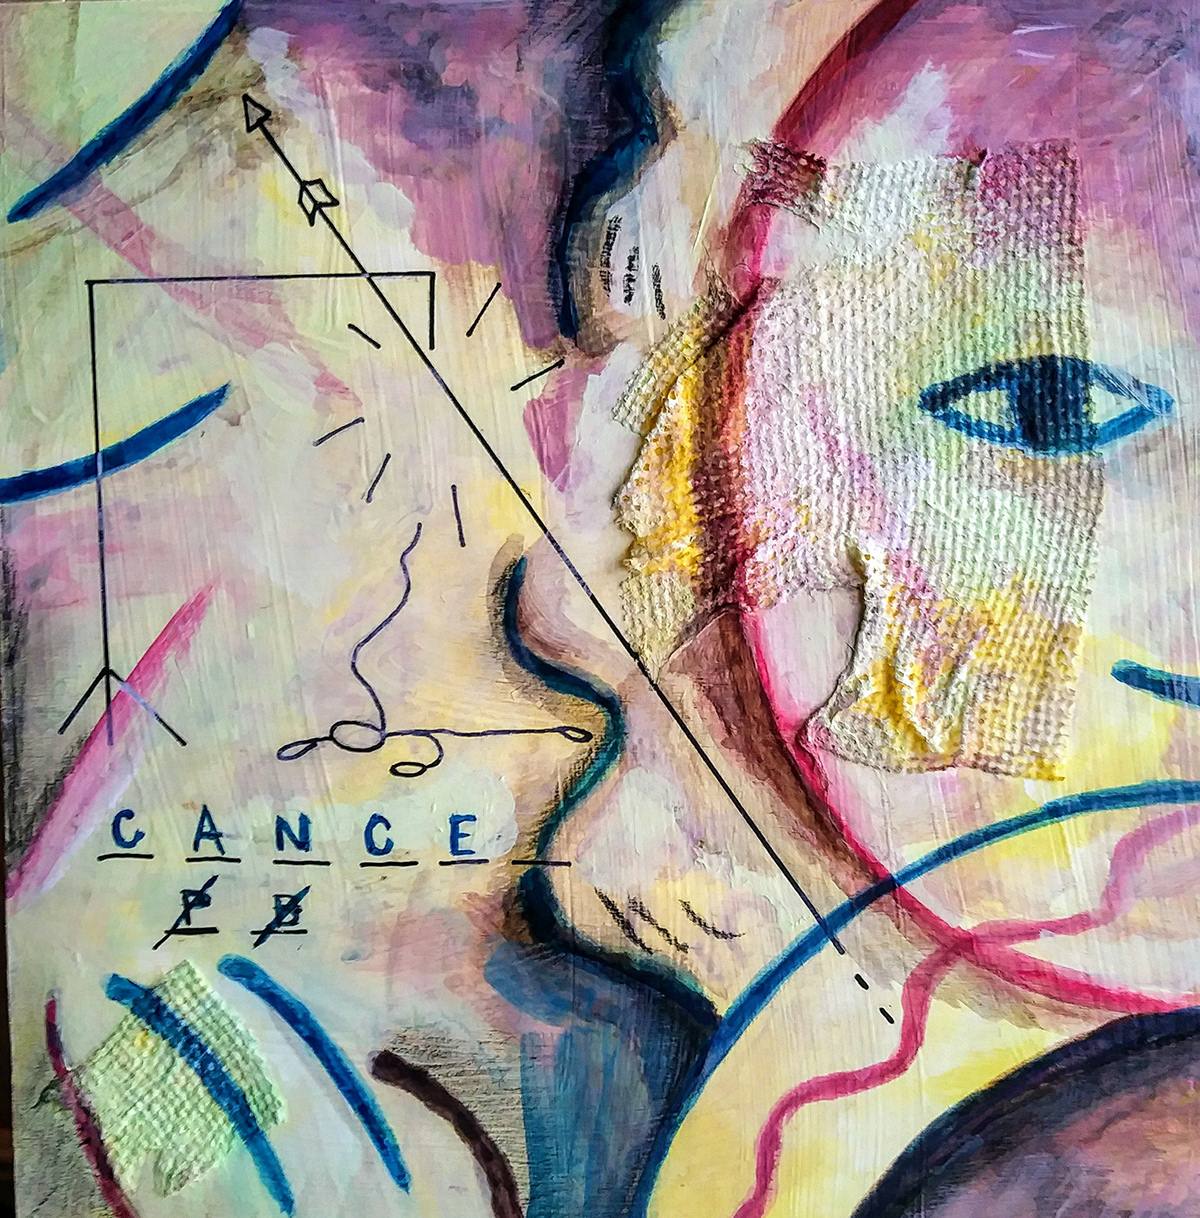 yukio kevin iraha's abstract illustration about fight cancer.